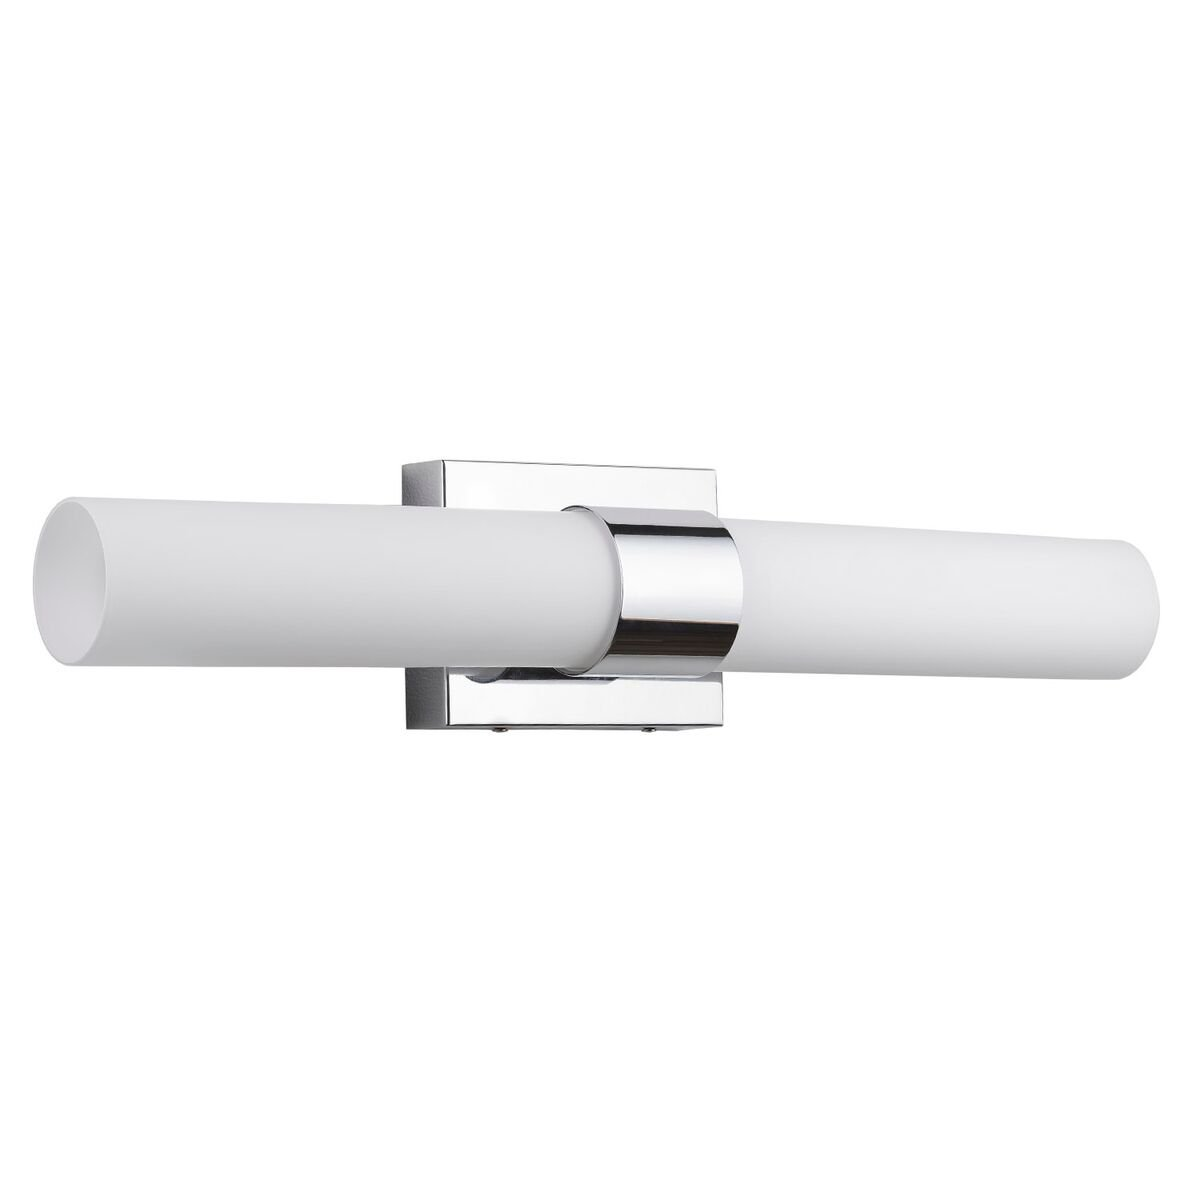 Perpetua 22 inch LED Bathroom Vanity Light - Chrome - Linea di Liara LL-SC942-PC by Linea di Liara